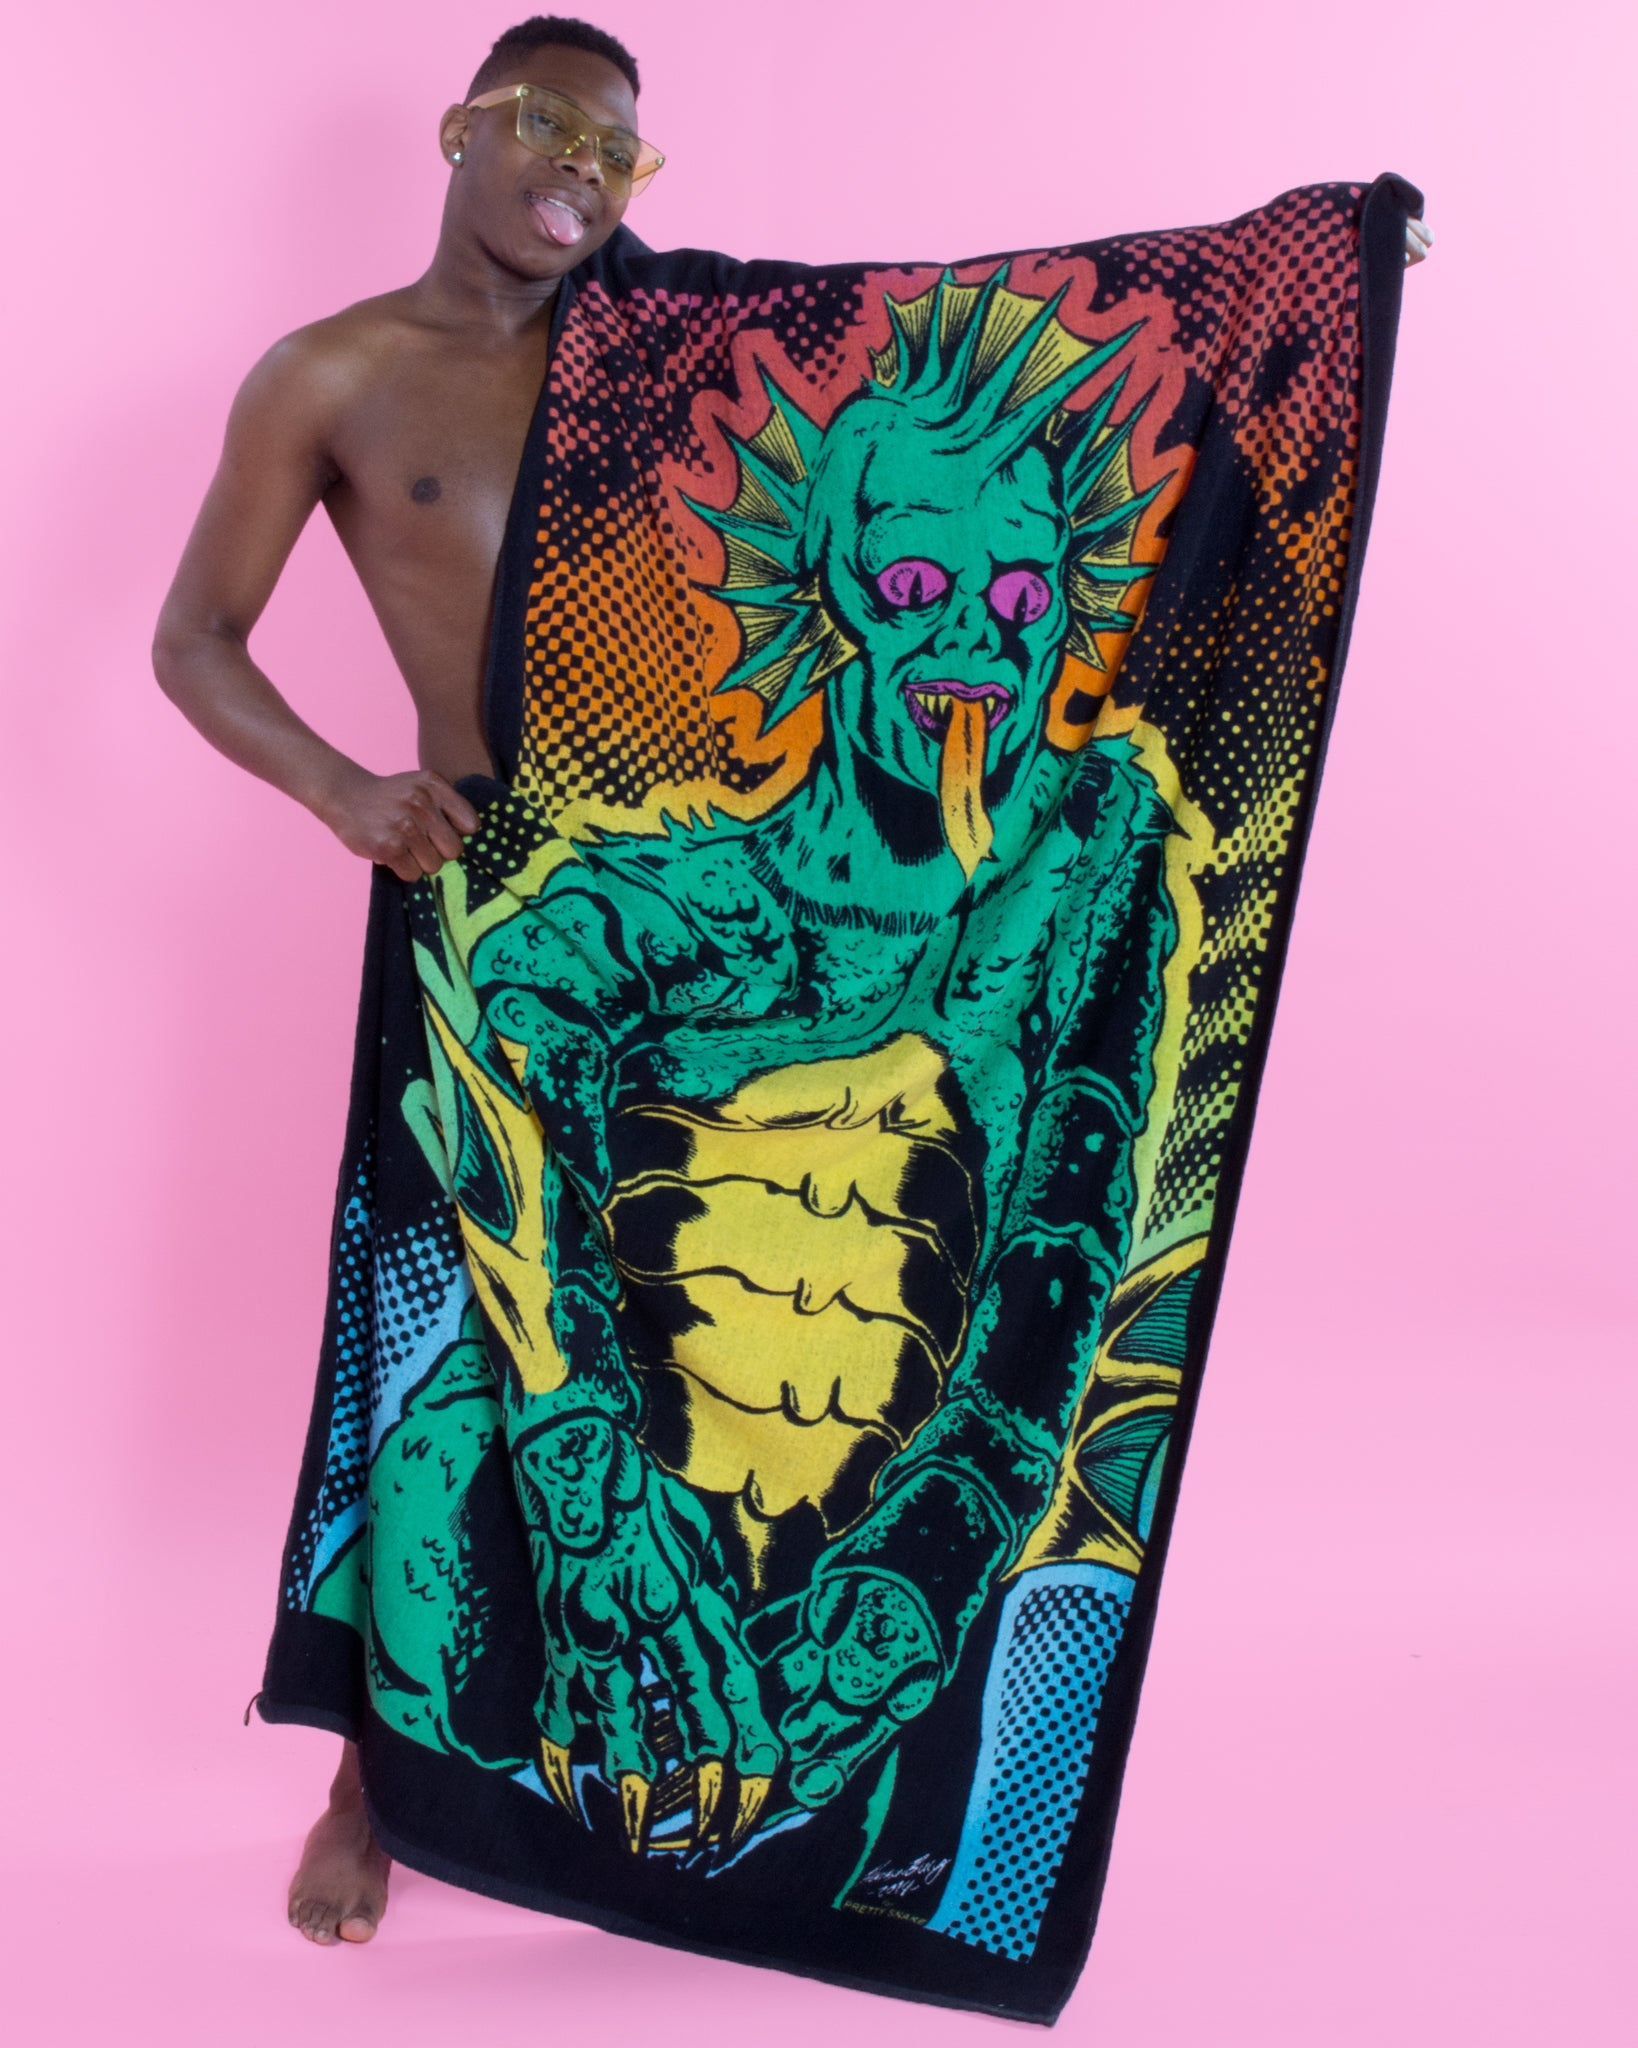 Gill-man Oversized Beach Towel